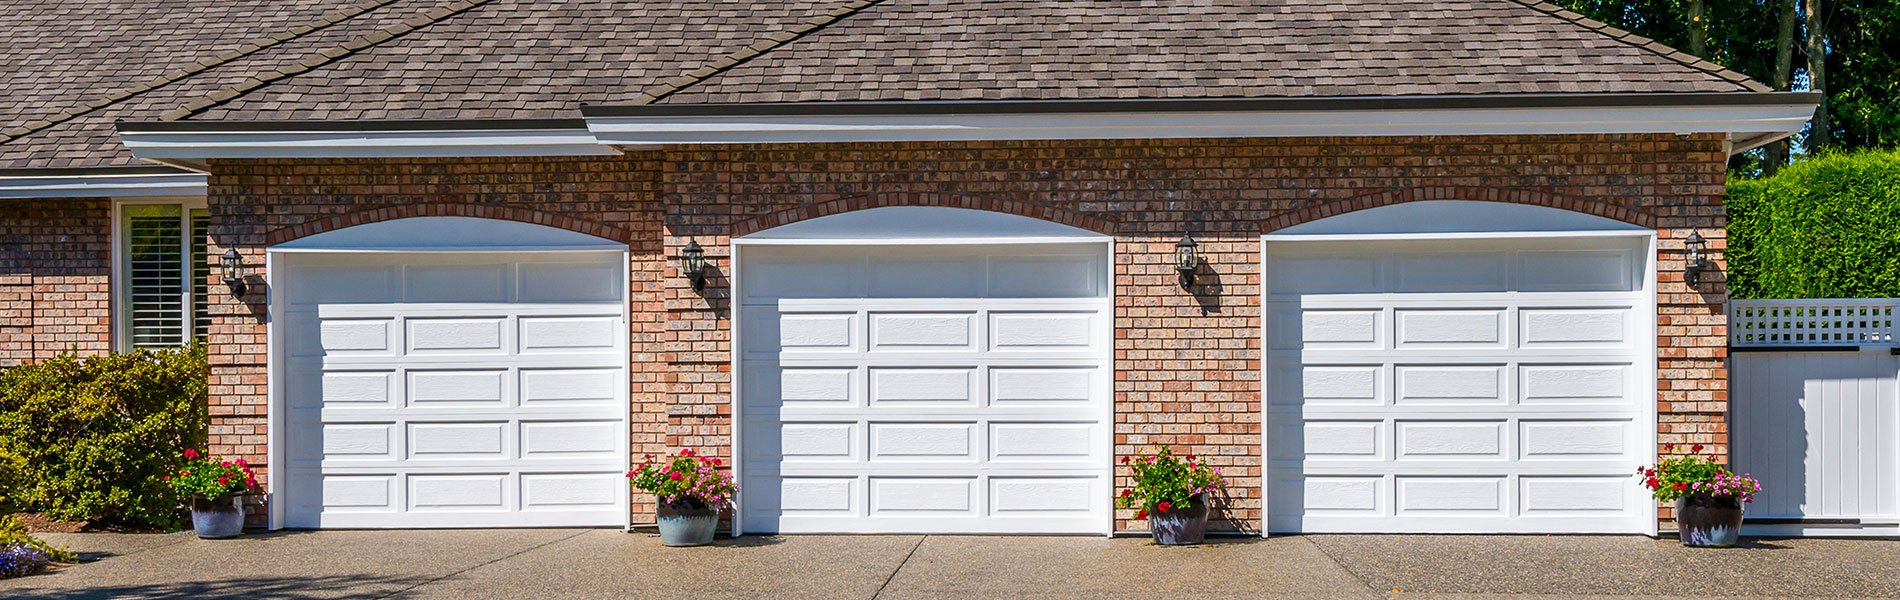 Galaxy Garage Door Repair Service, Powell, OH 740-242-0046